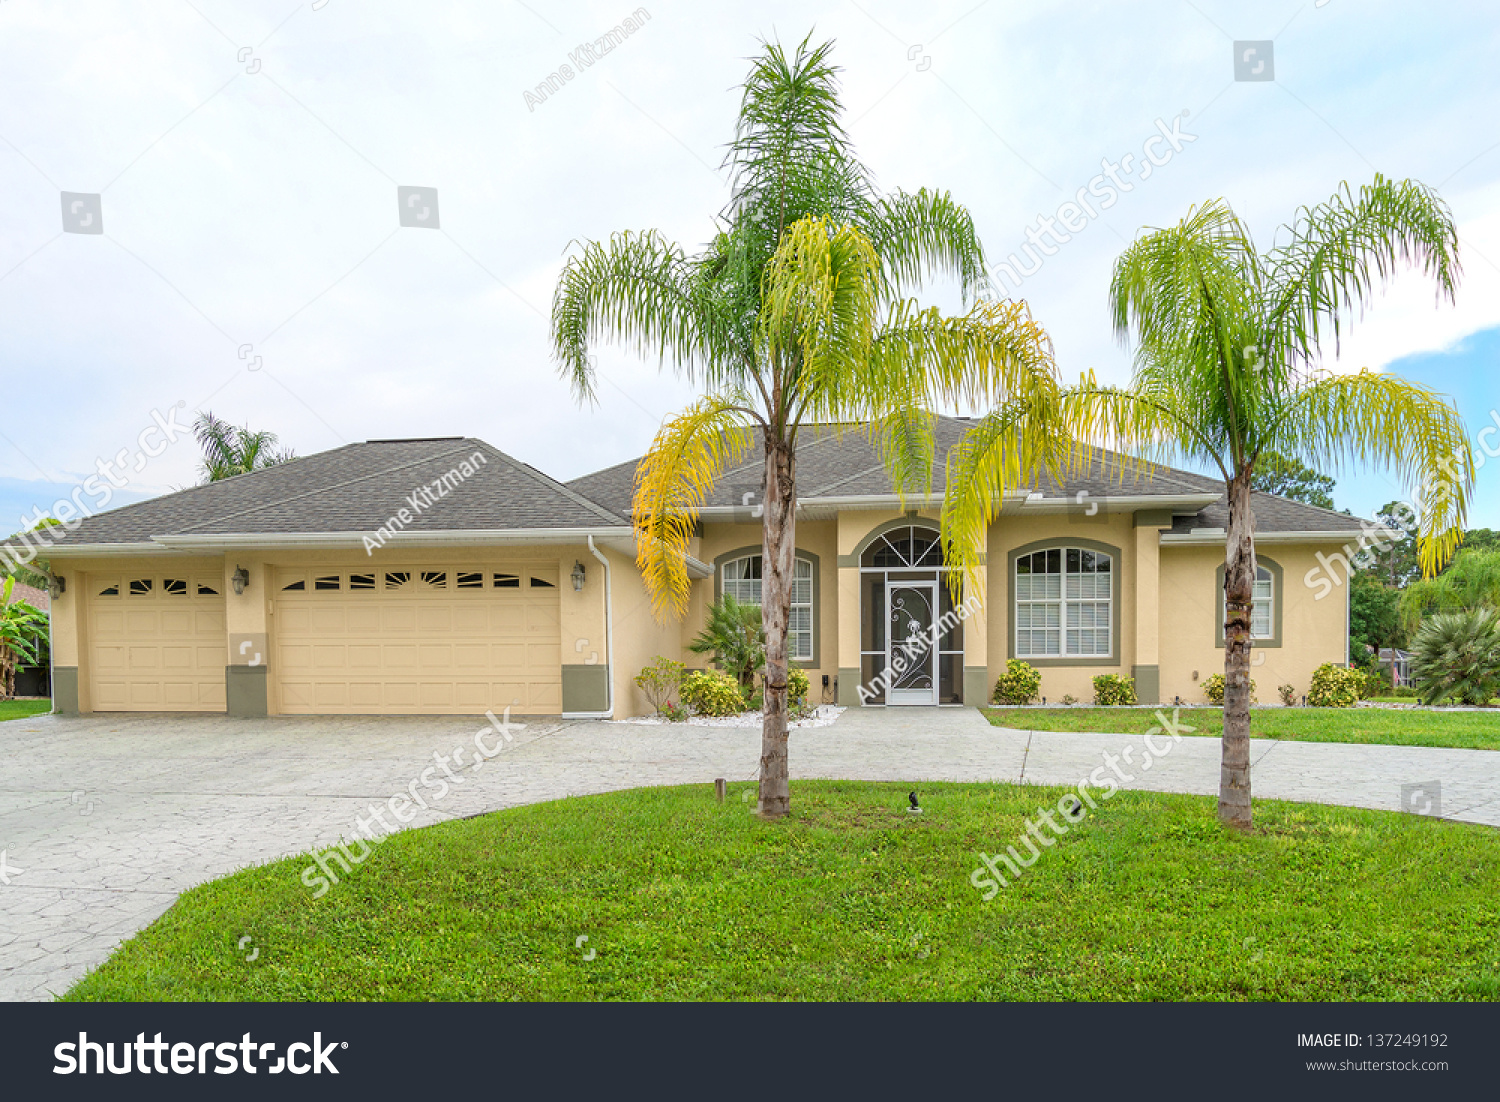 Typical southwest florida concrete block stucco stock for Concrete homes in florida